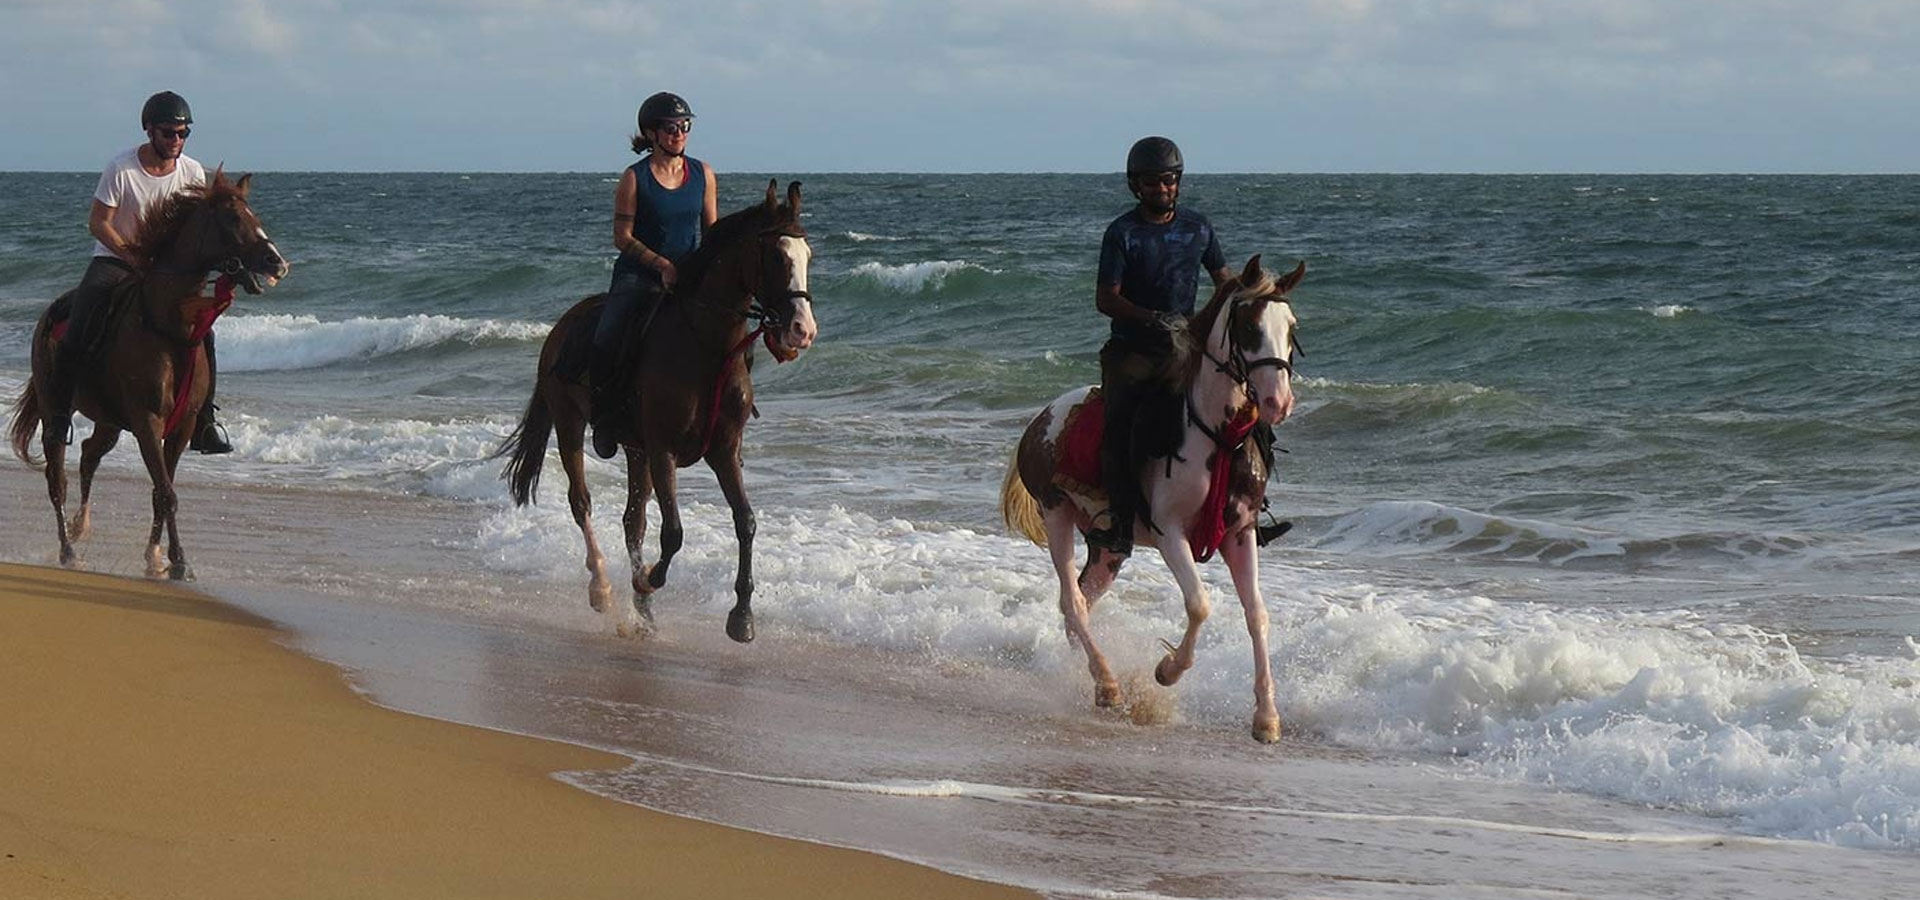 Sri Lanka Horse Riding Tours, Horse Riding in Sri Lanka